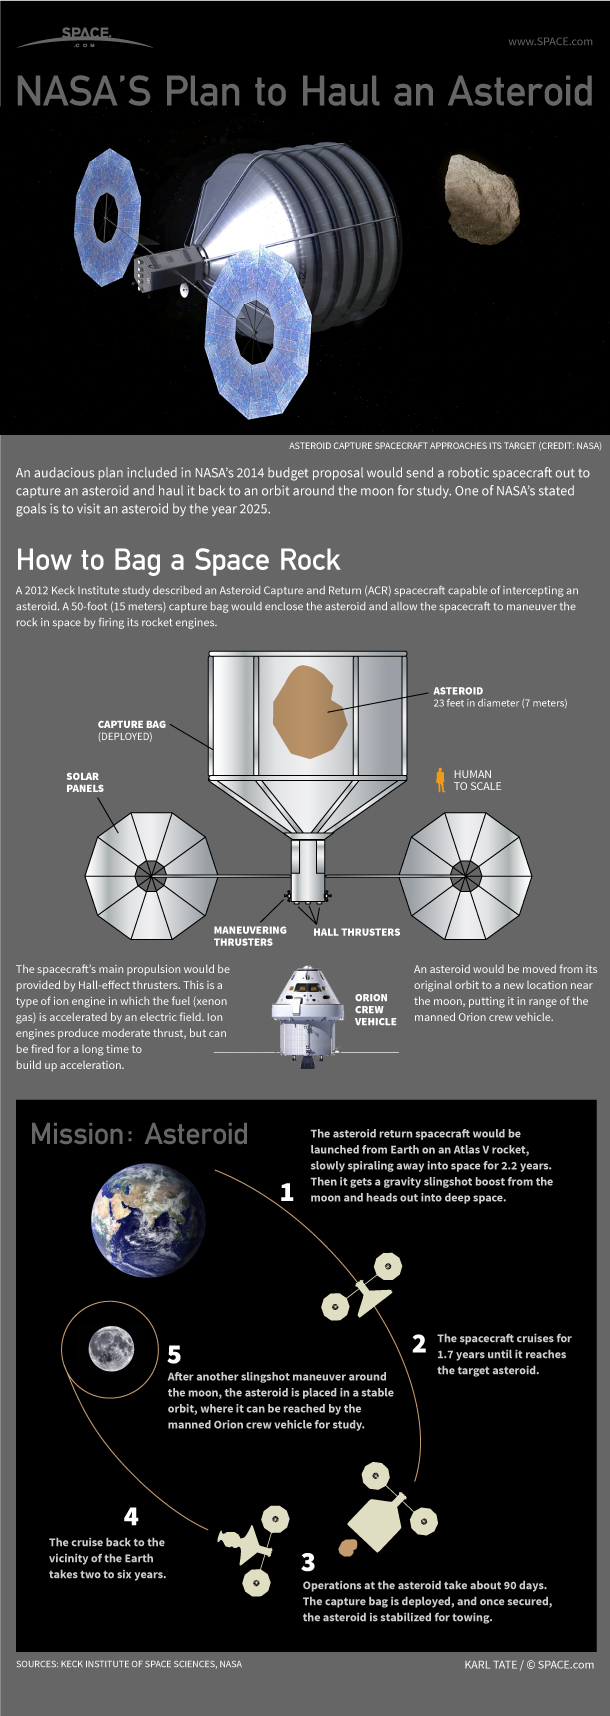 Infographic: How NASA wants to move an asteroid closer to the Earth for study.